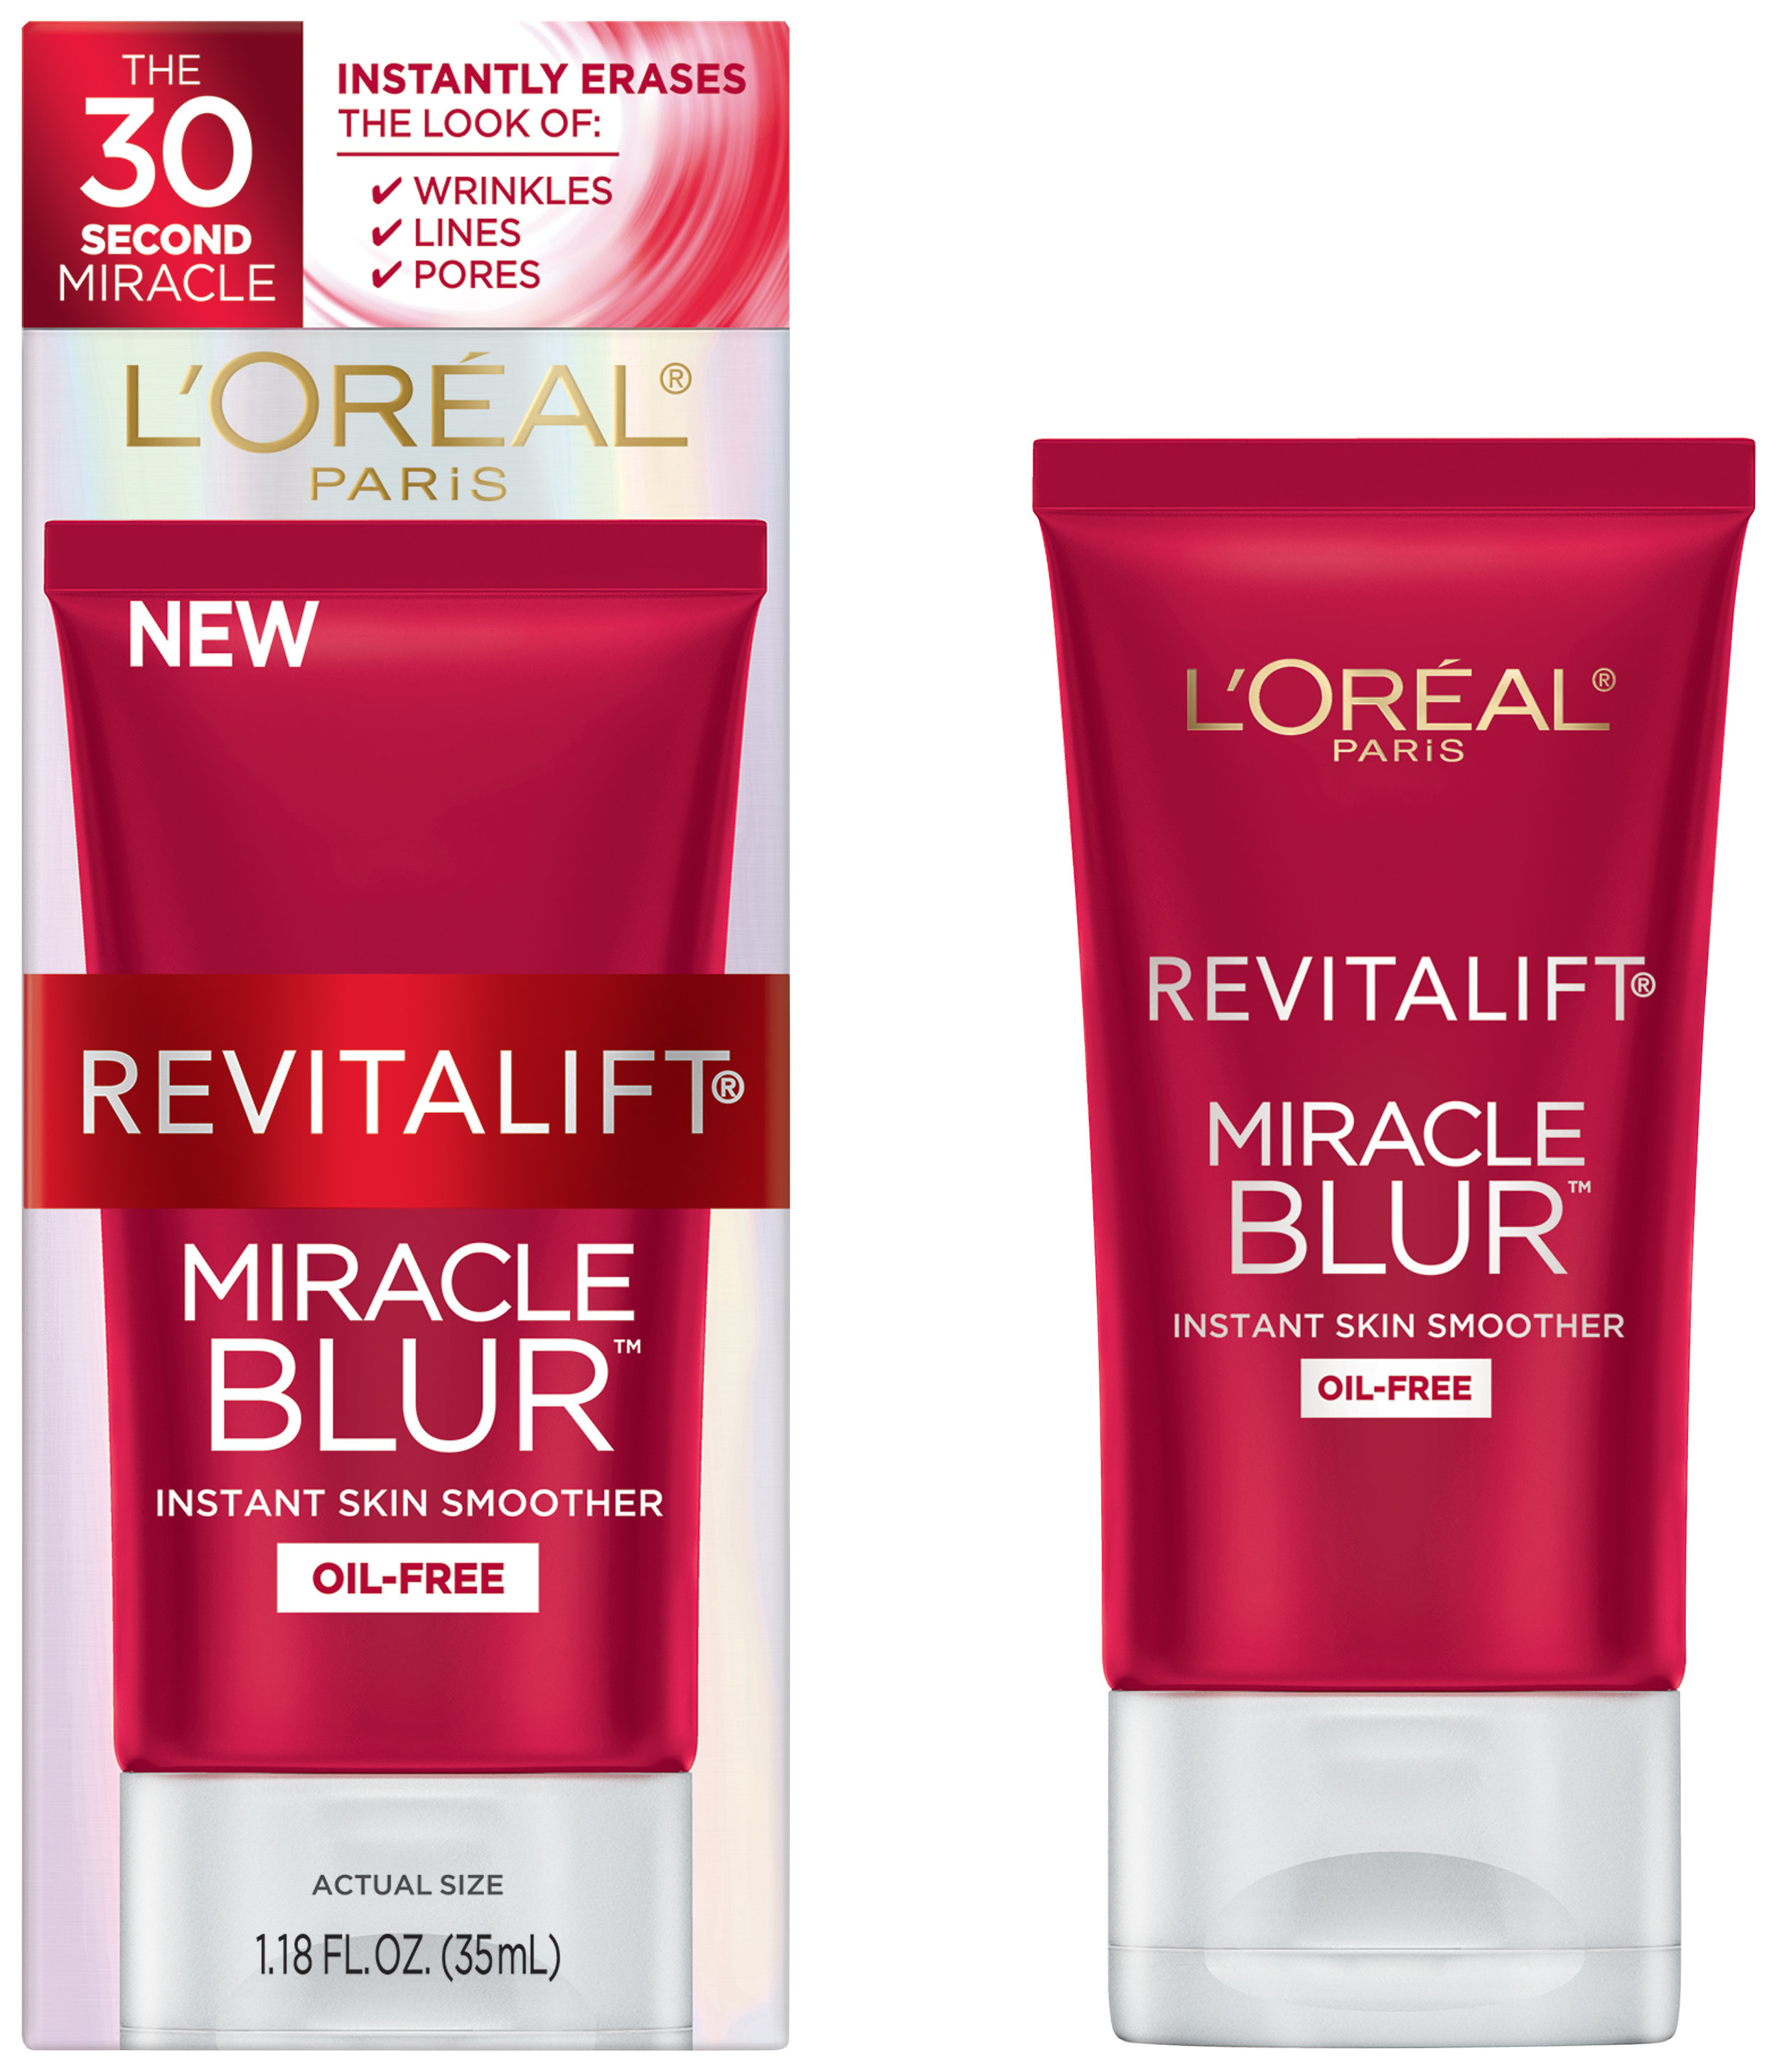 Miracle-Blur-Oil-Free.jpg